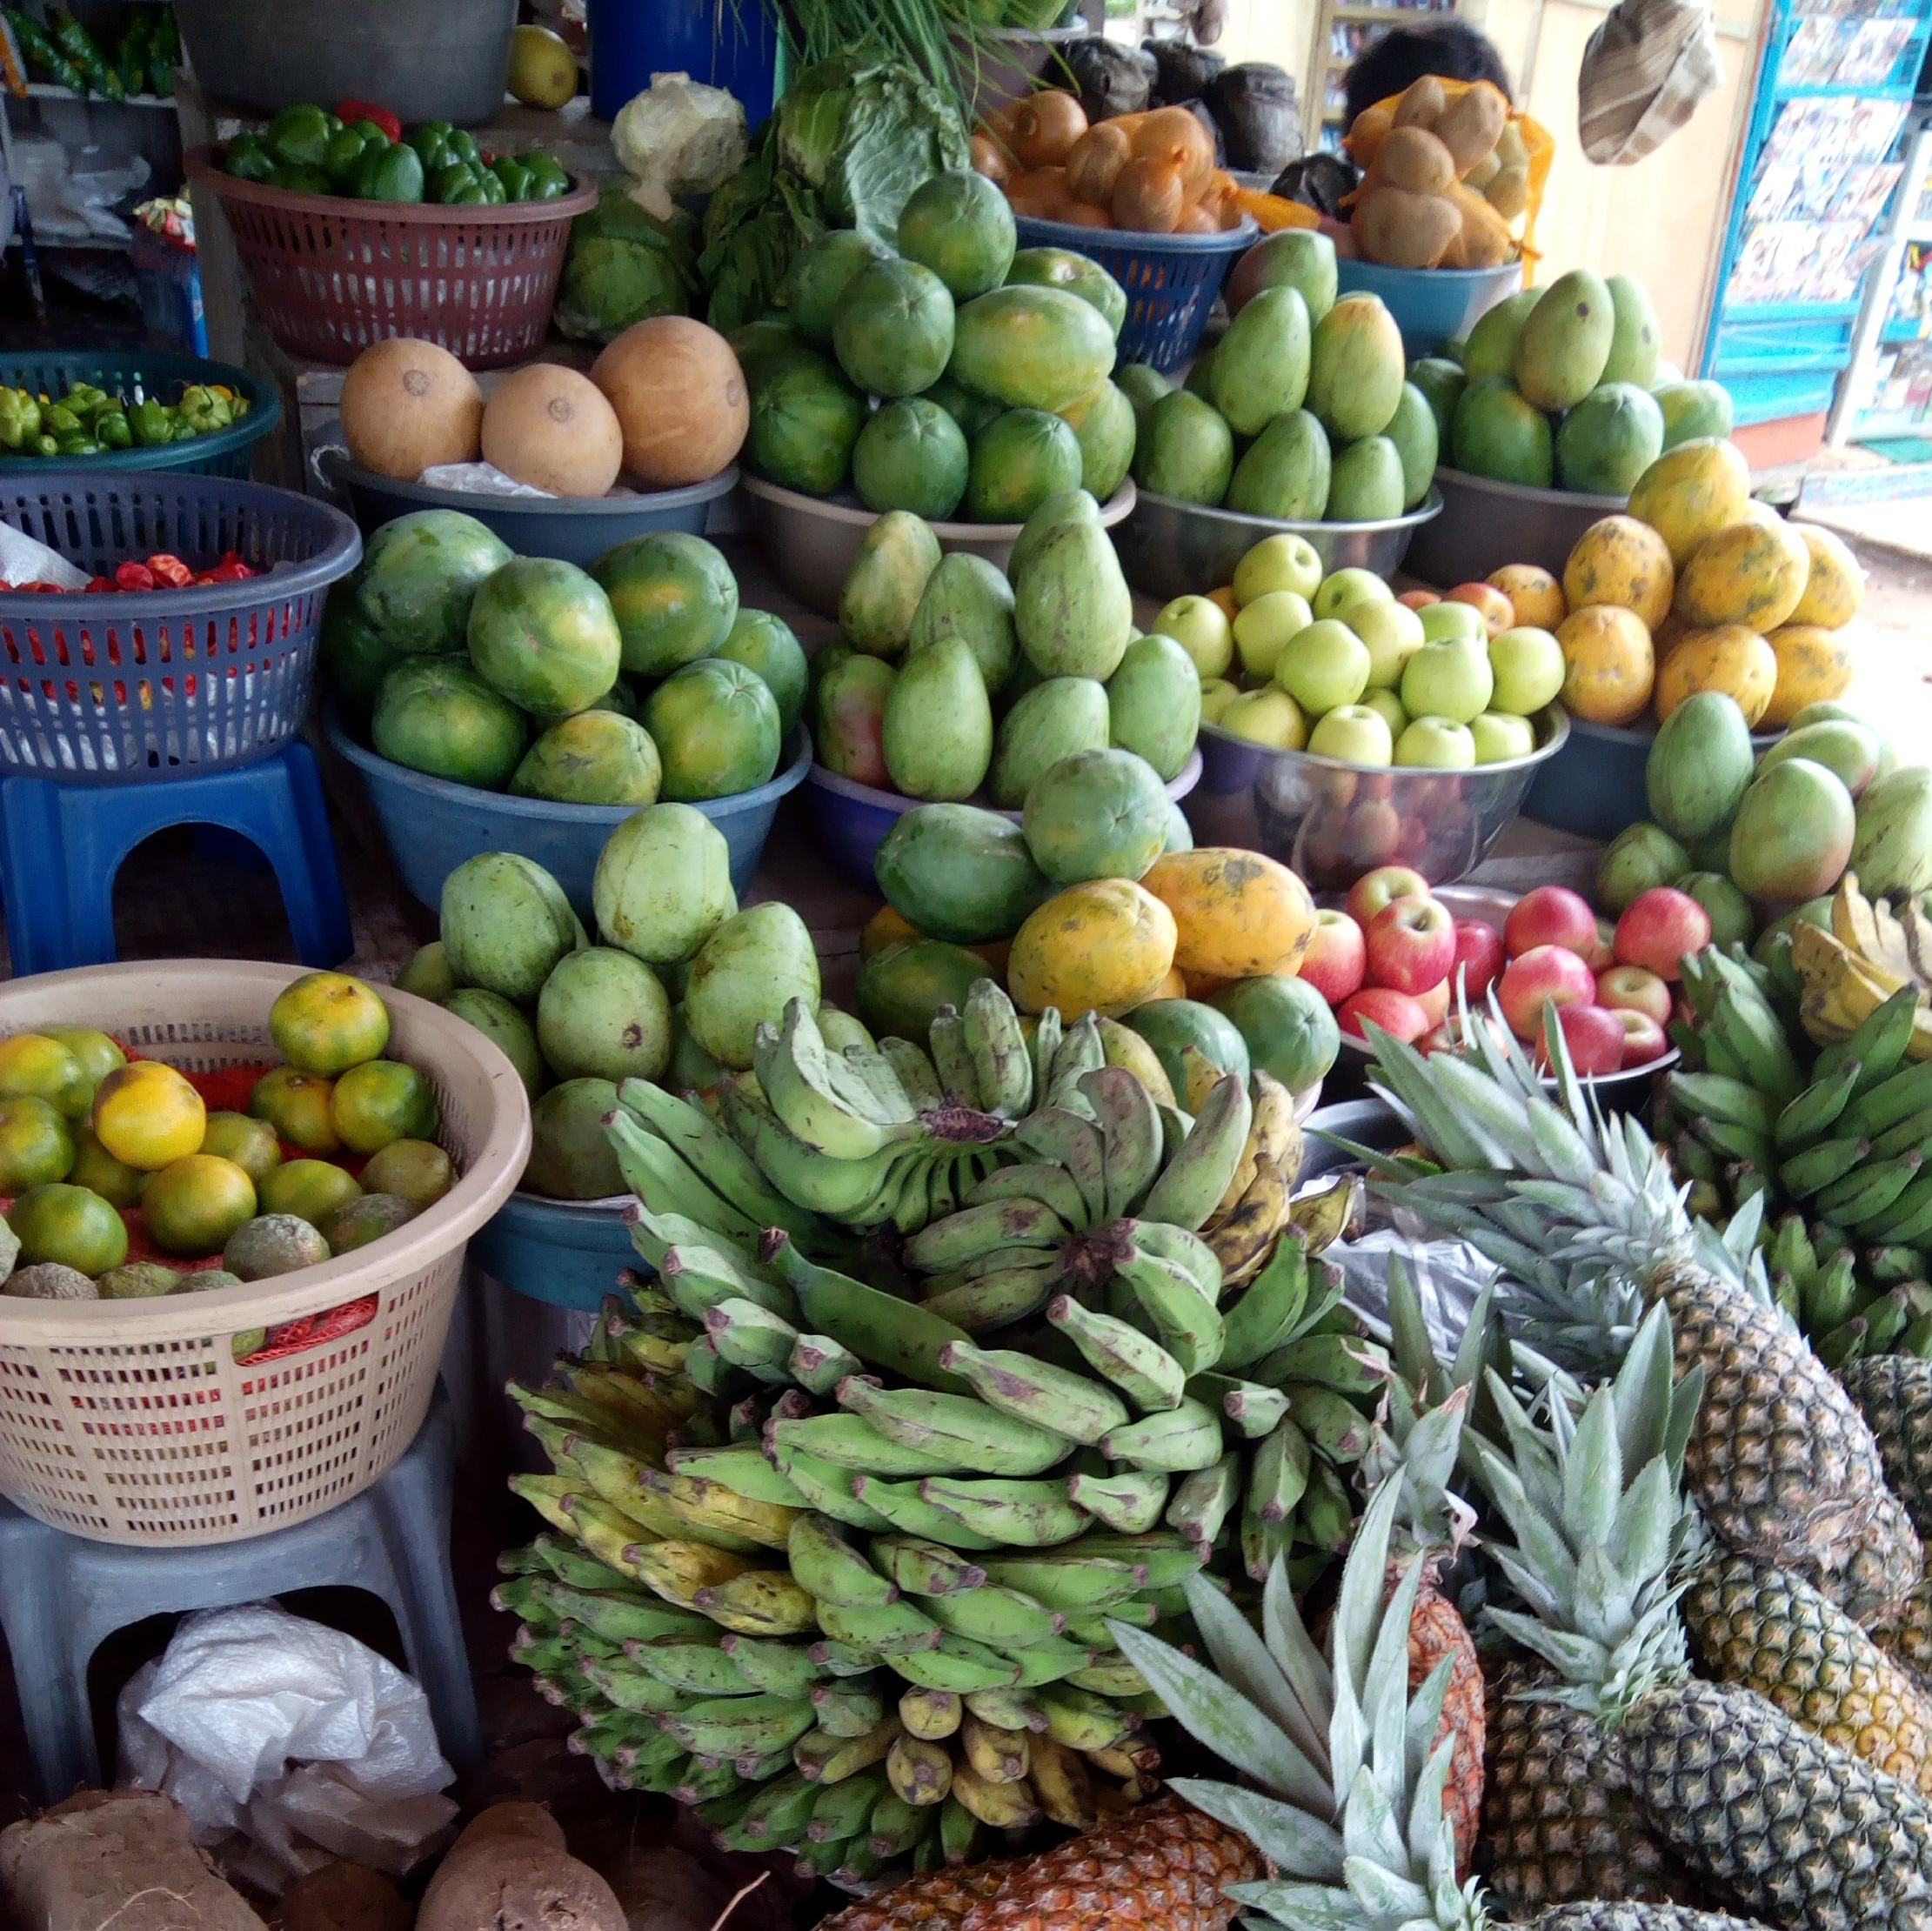 Fruits arranged in a market